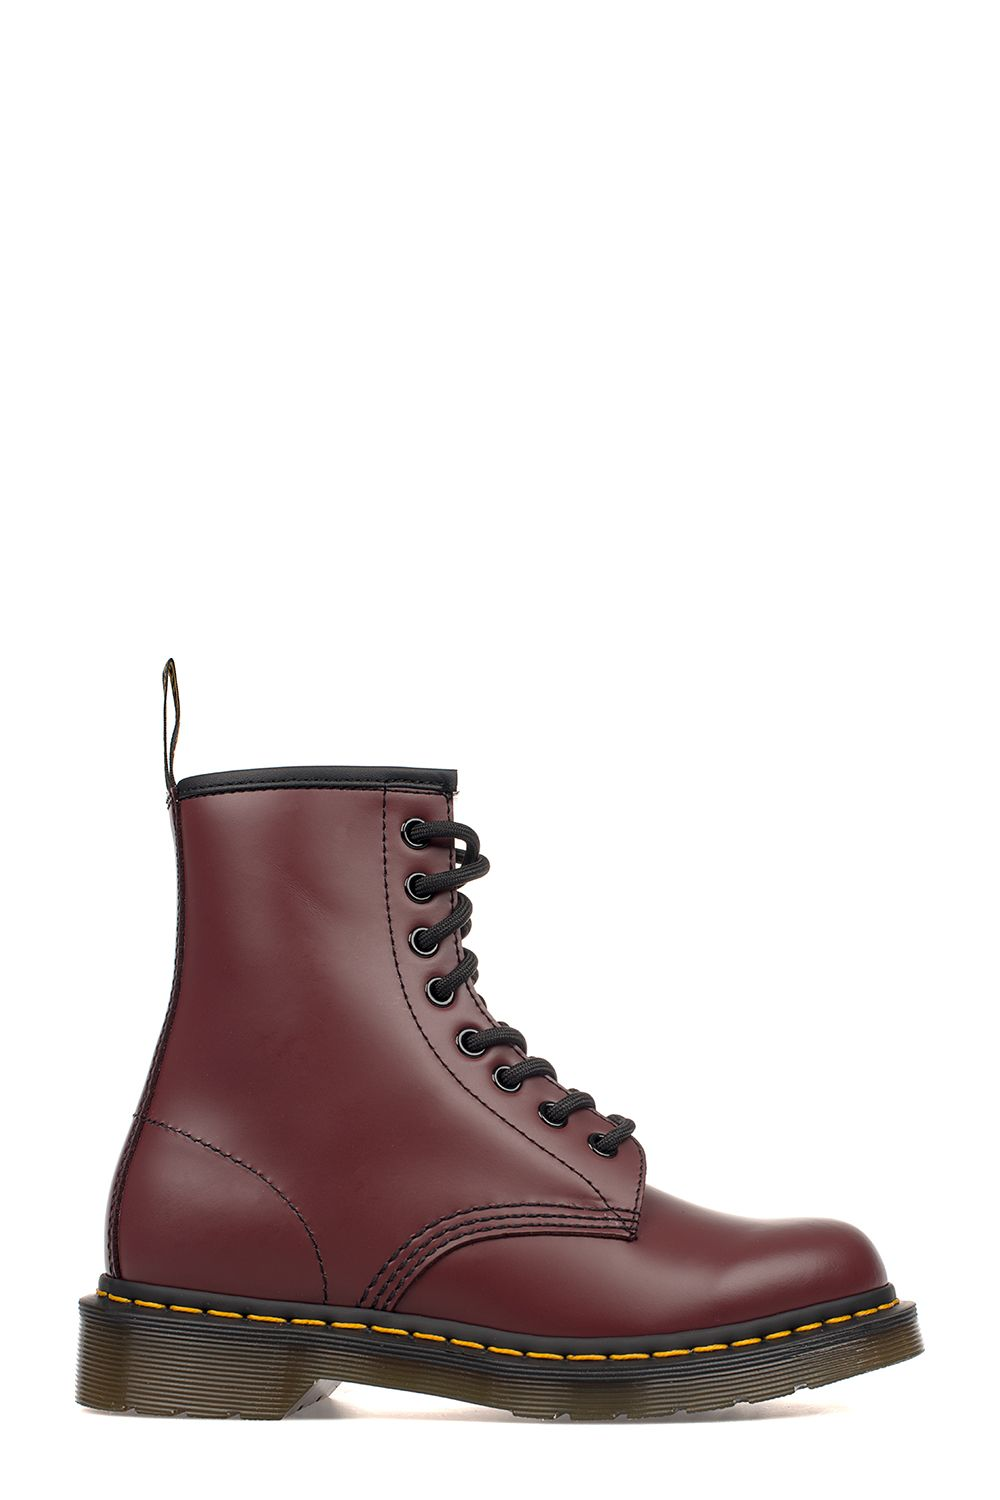 dr martens bordeaux brushed leather low boot red women 39 s boots italist. Black Bedroom Furniture Sets. Home Design Ideas